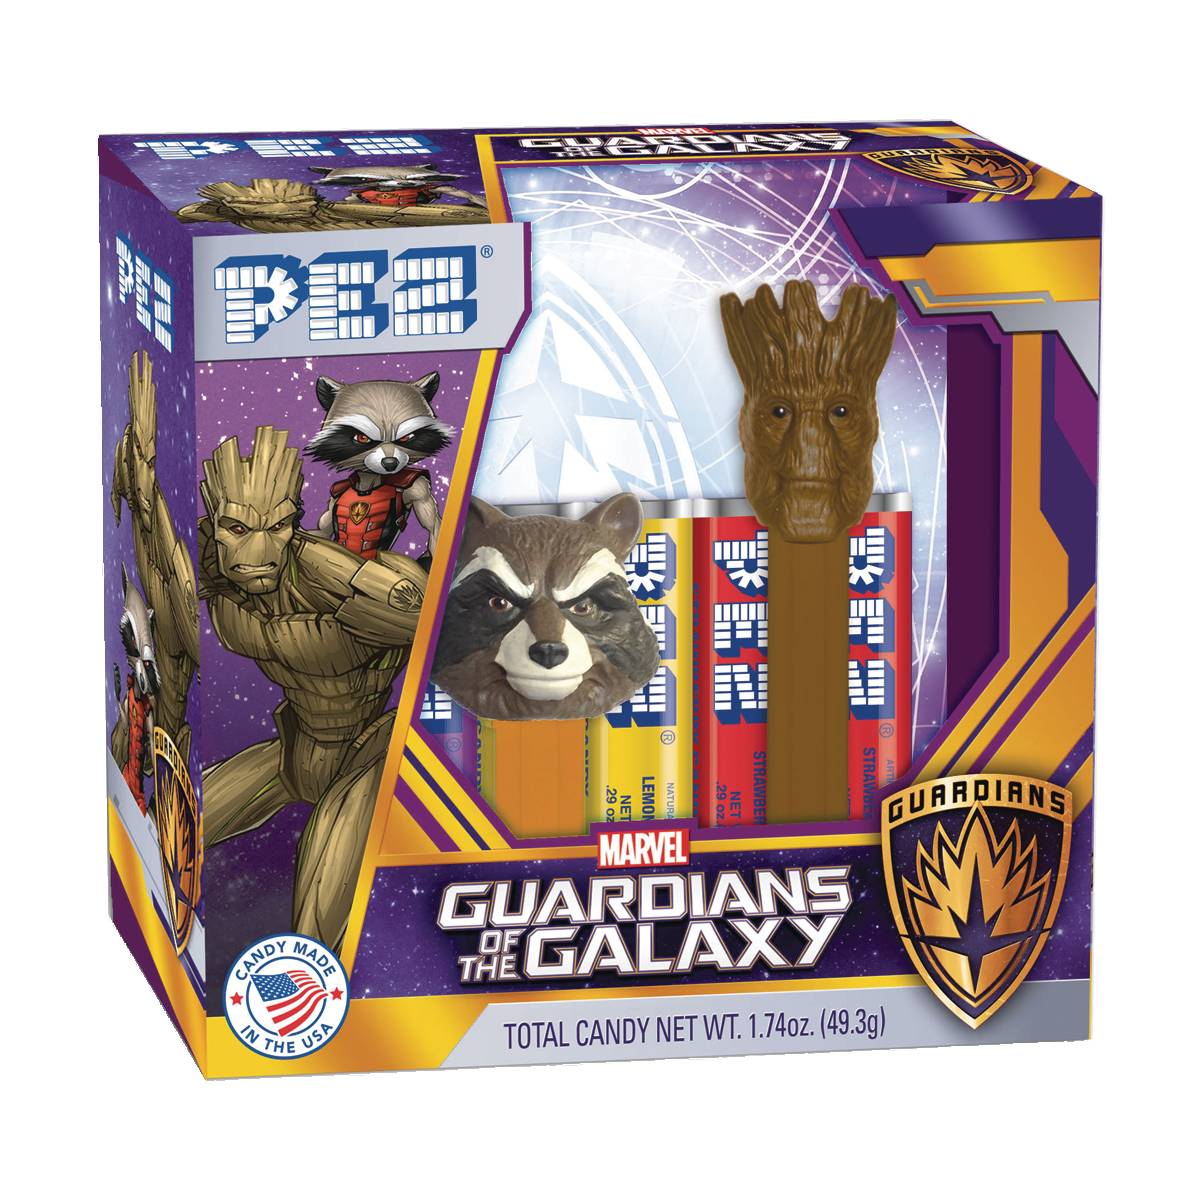 PEZ GOTG GROOT AND ROCKET RACOON 2PK 12PC BLISTER DIS.jpg